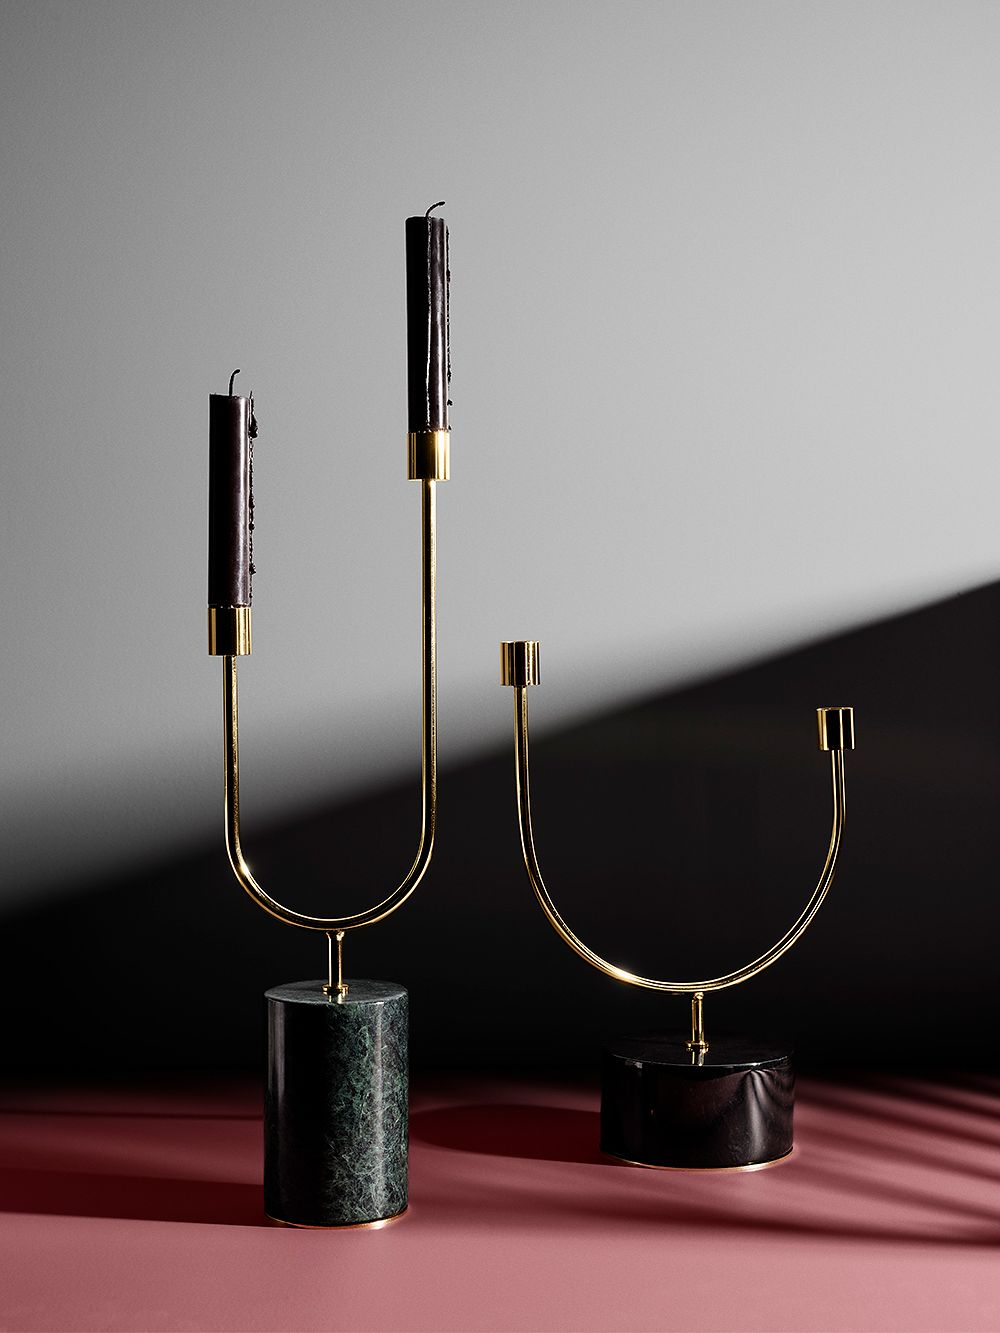 AYTM's Grasil candleholders in brass and marble